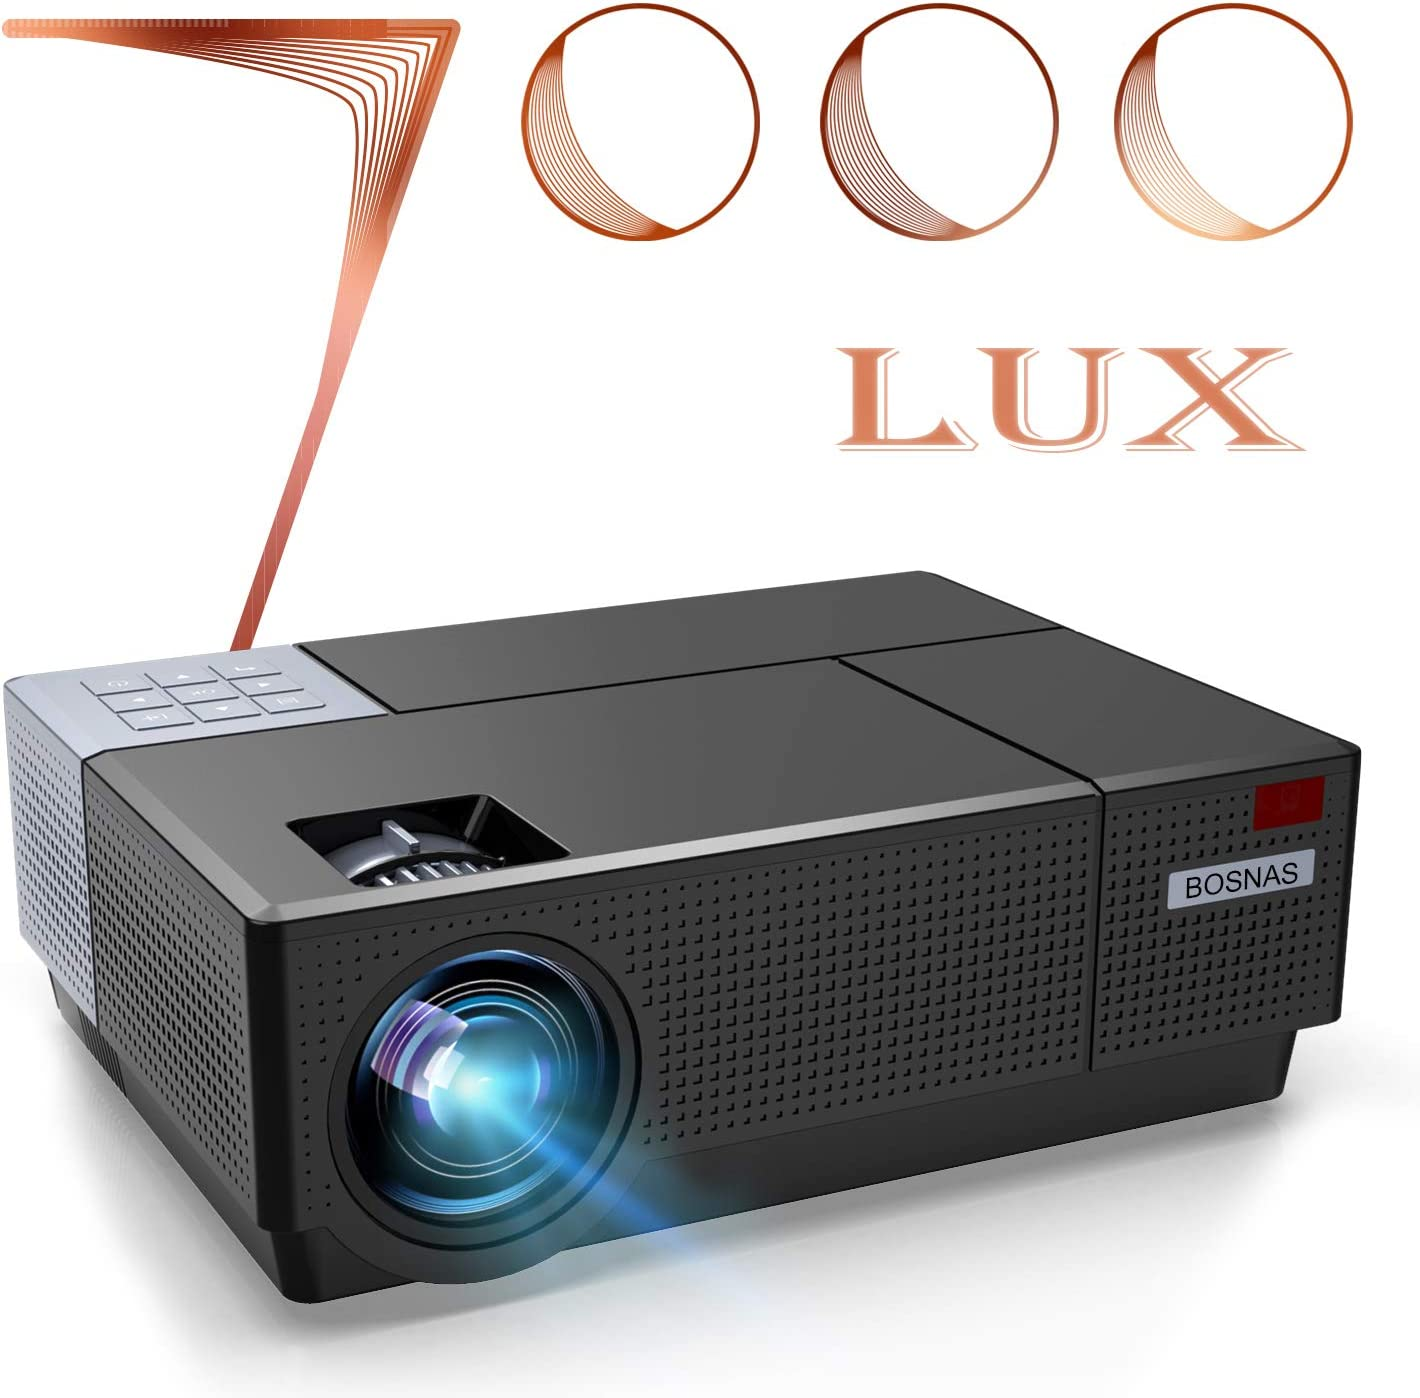 BOSNAS Native 1080P Projector 7000 Lux LED Projector 300'' Projection size adjustable ±50° 4D Keystone Correction Support 4k for Home Theater Compatible for TV Stick HDMI VGA USB Laptop iPhone Android